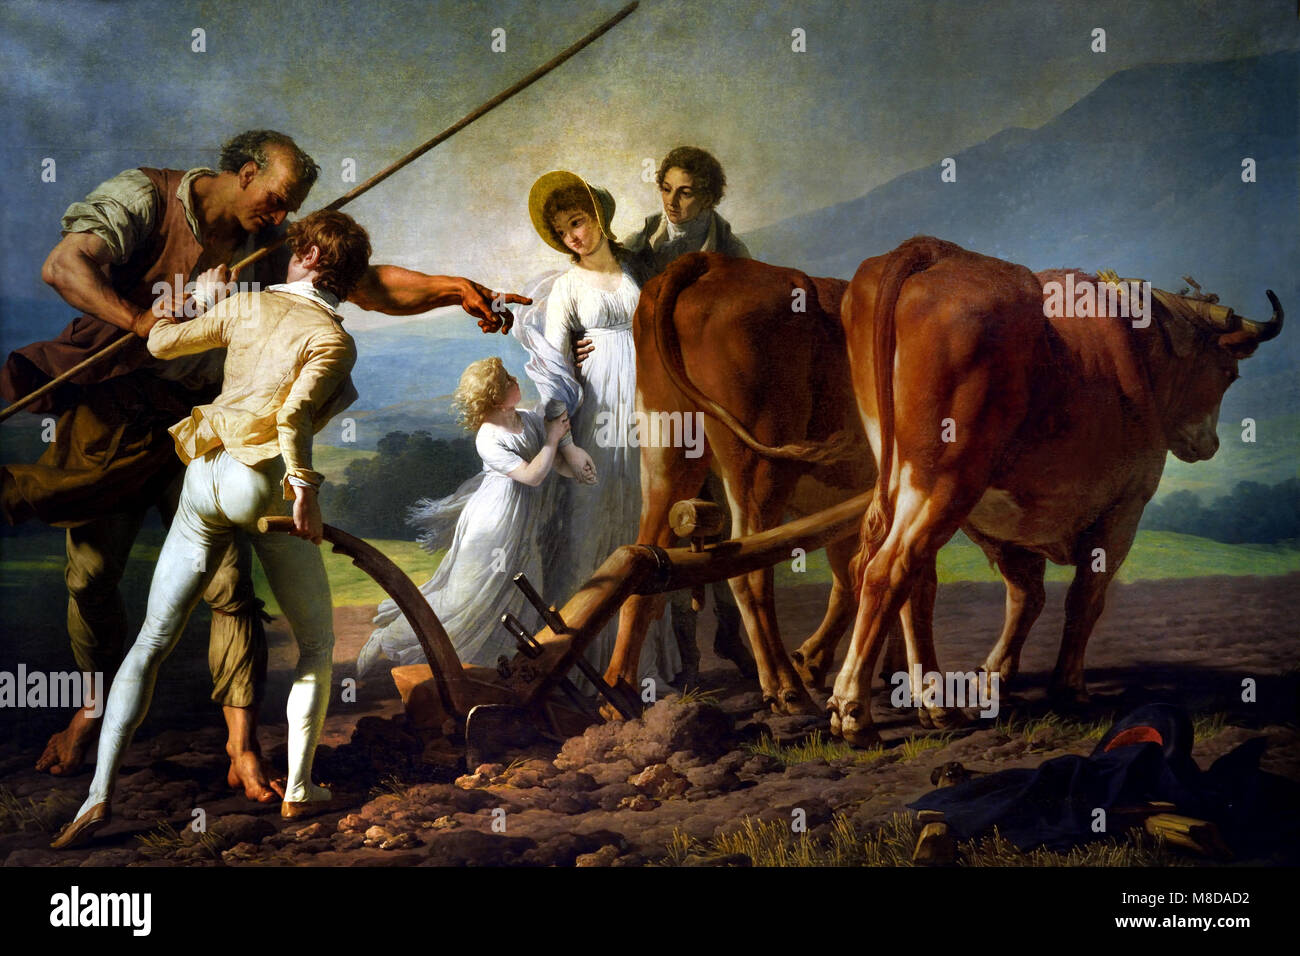 The Ploughing Lesson by Francois Andre Vincent 1746-1816 France, French, - Stock Image